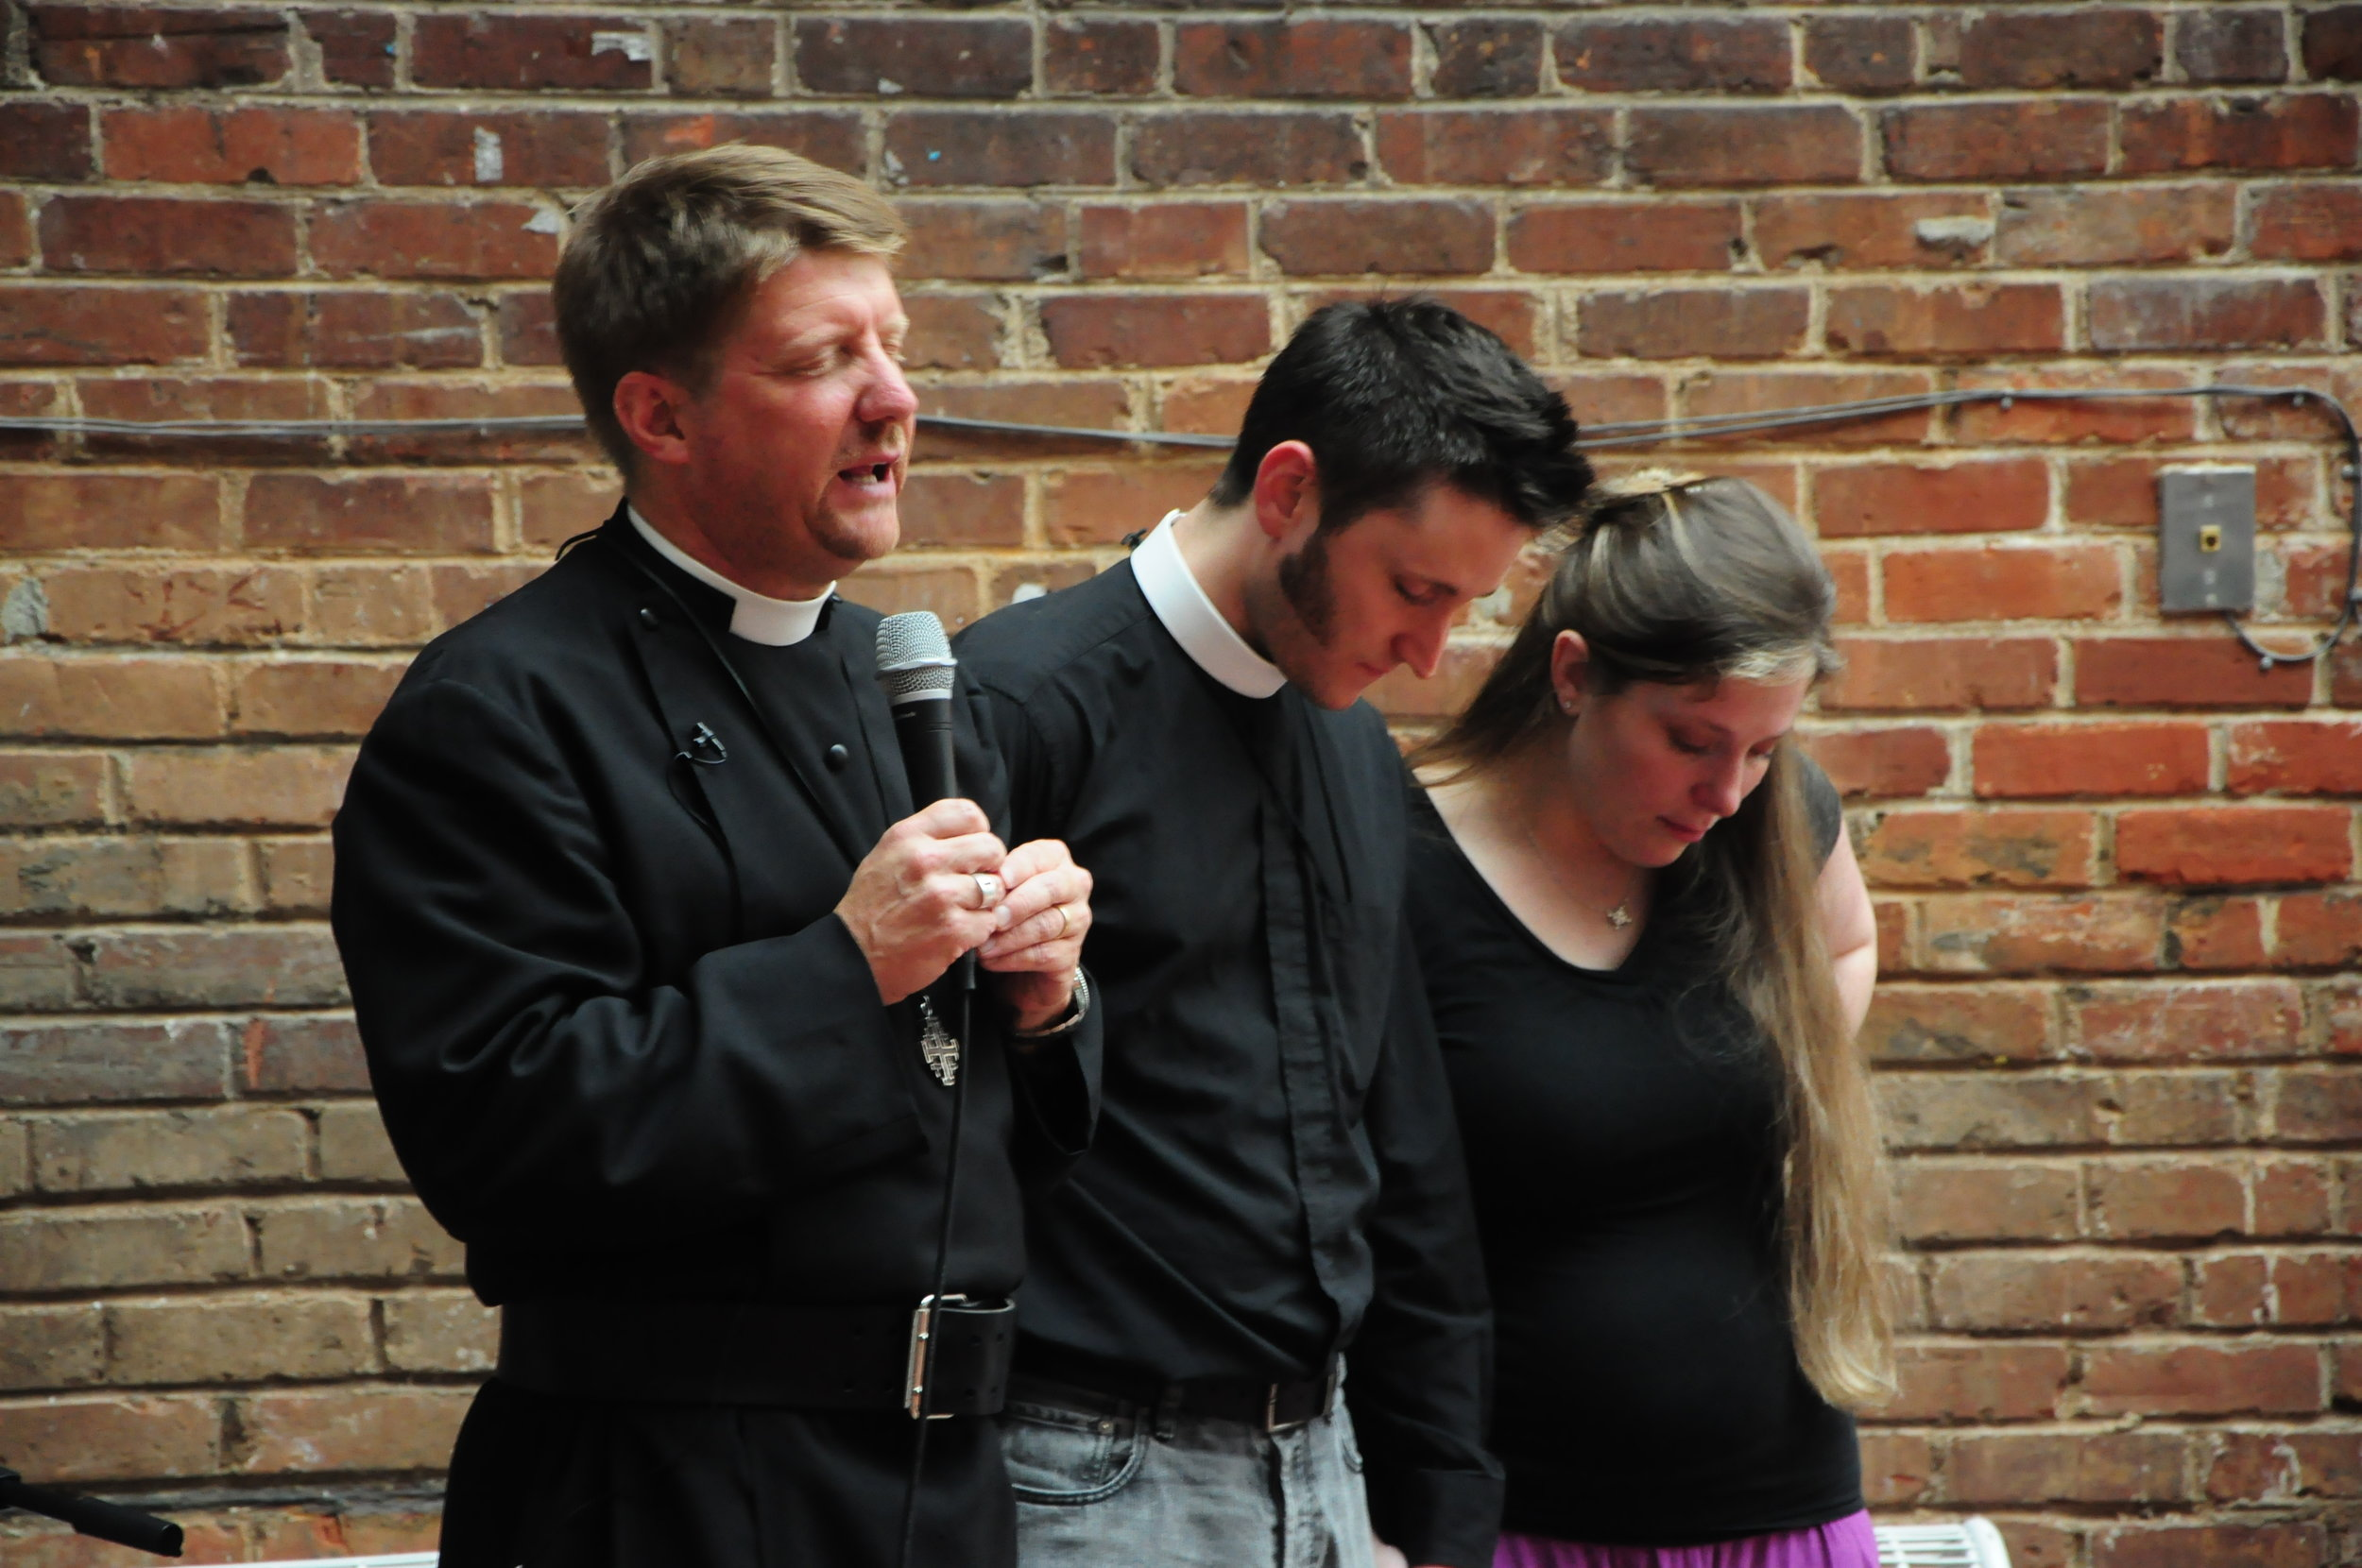 Our First Associate Rector, Aaron Burt, left in 2010 to begin a Church in the Northwest